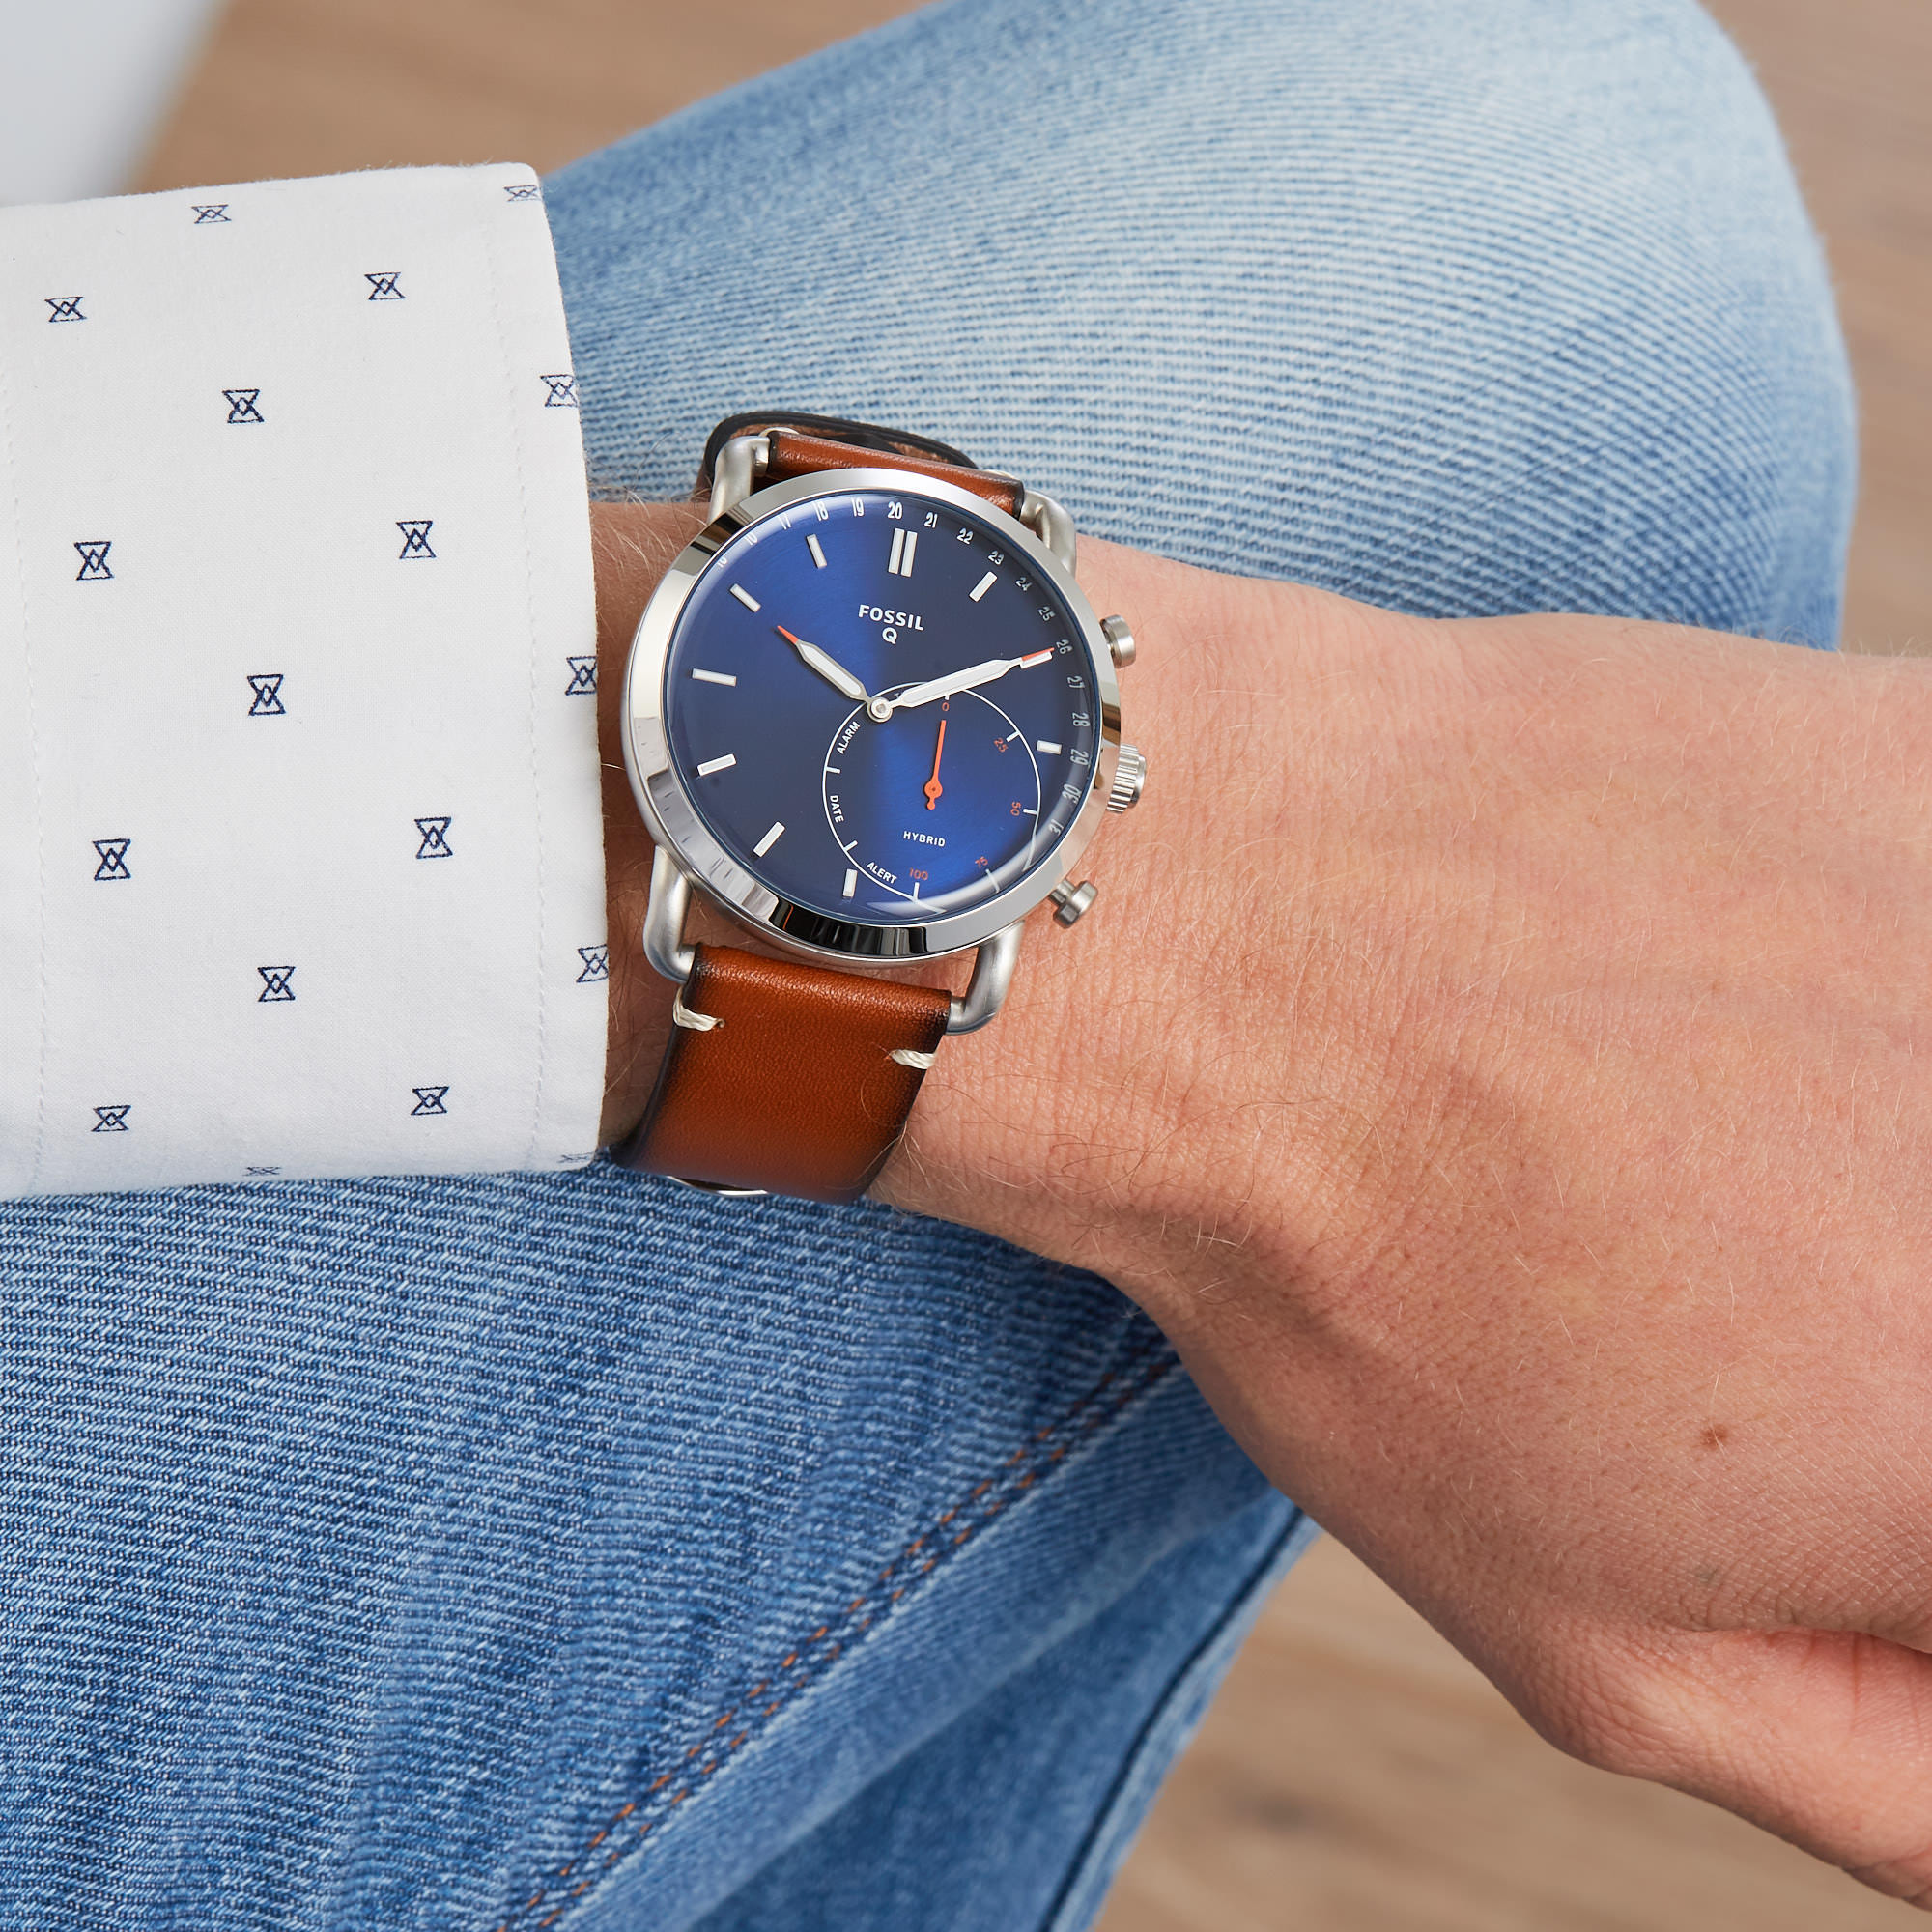 Fossil Q Watch Ftw1151 Watches